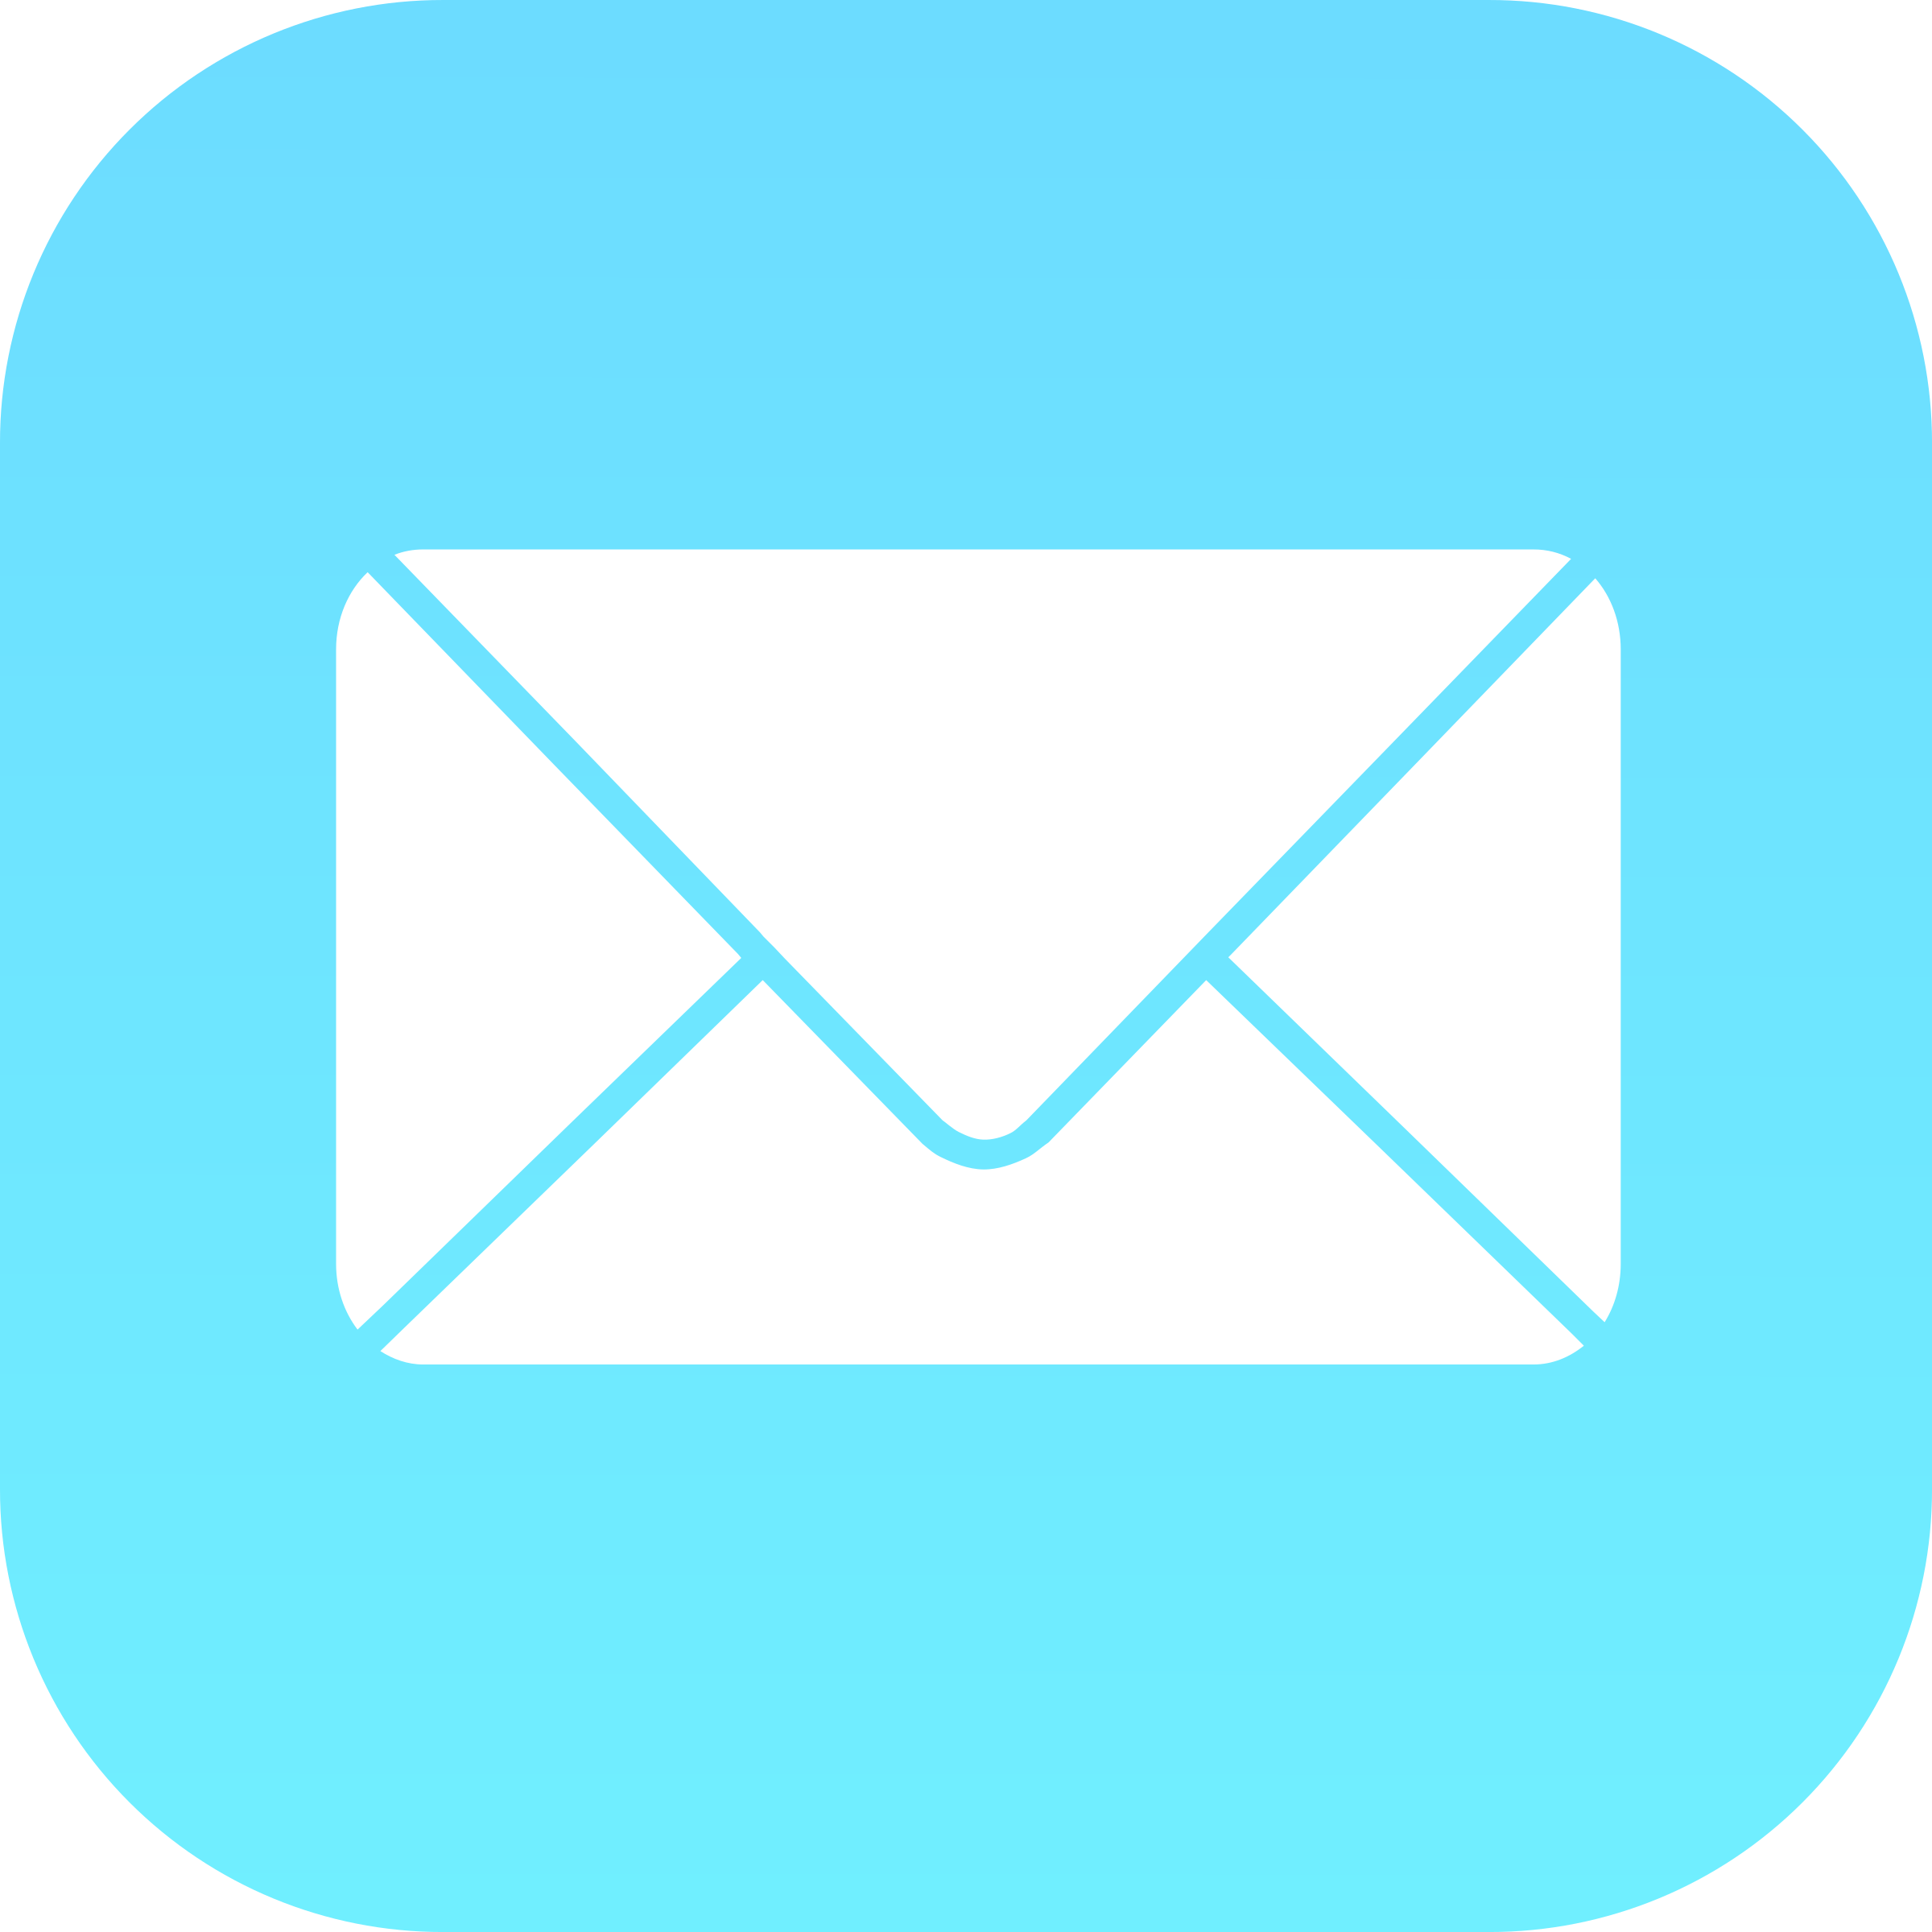 Mail iOS Logo PNG Transparent & SVG Vector.